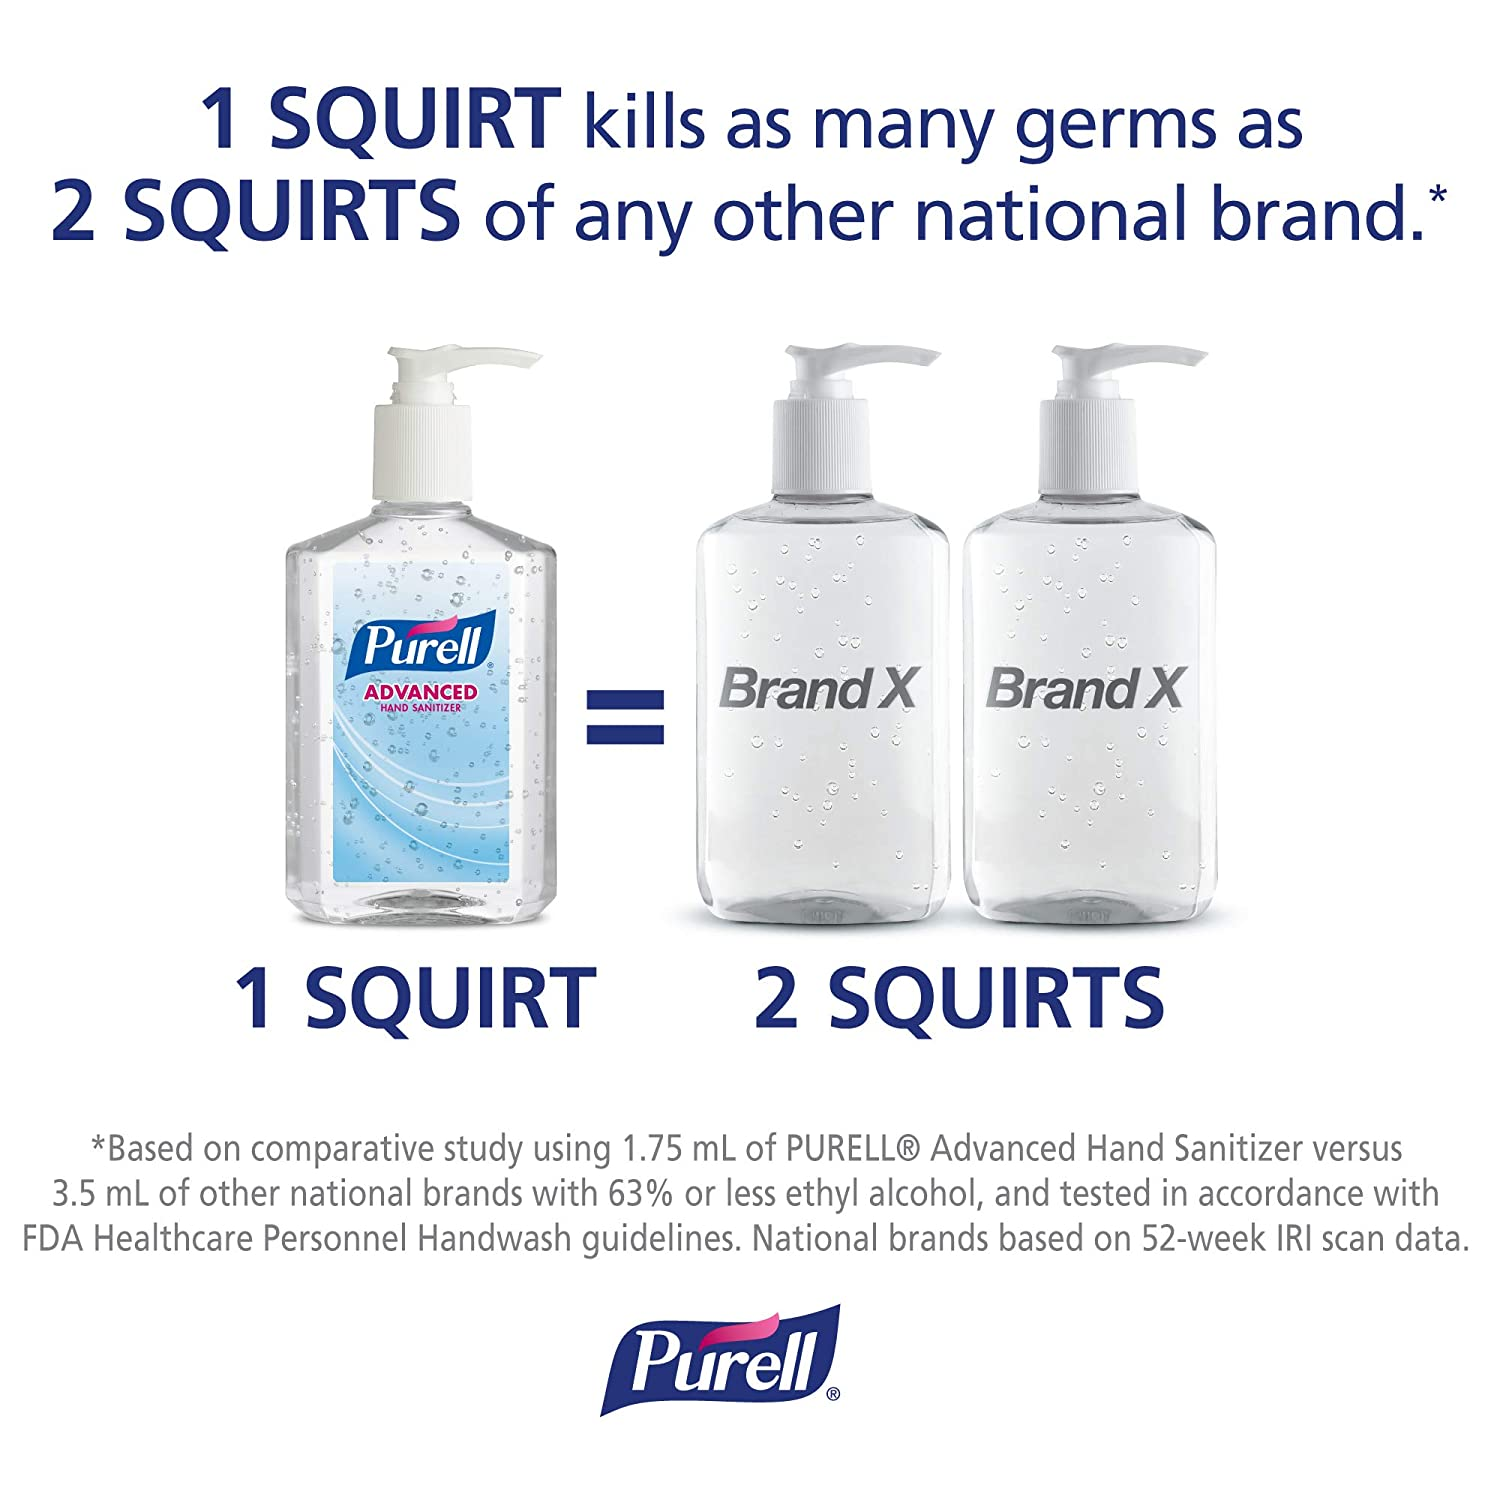 PURELL Advanced Hand Sanitizer Naturals with Plant Based Alcohol, Citrus Scent, 12 fl oz Pump Bottle (Pack of 2)- 9629-06-EC